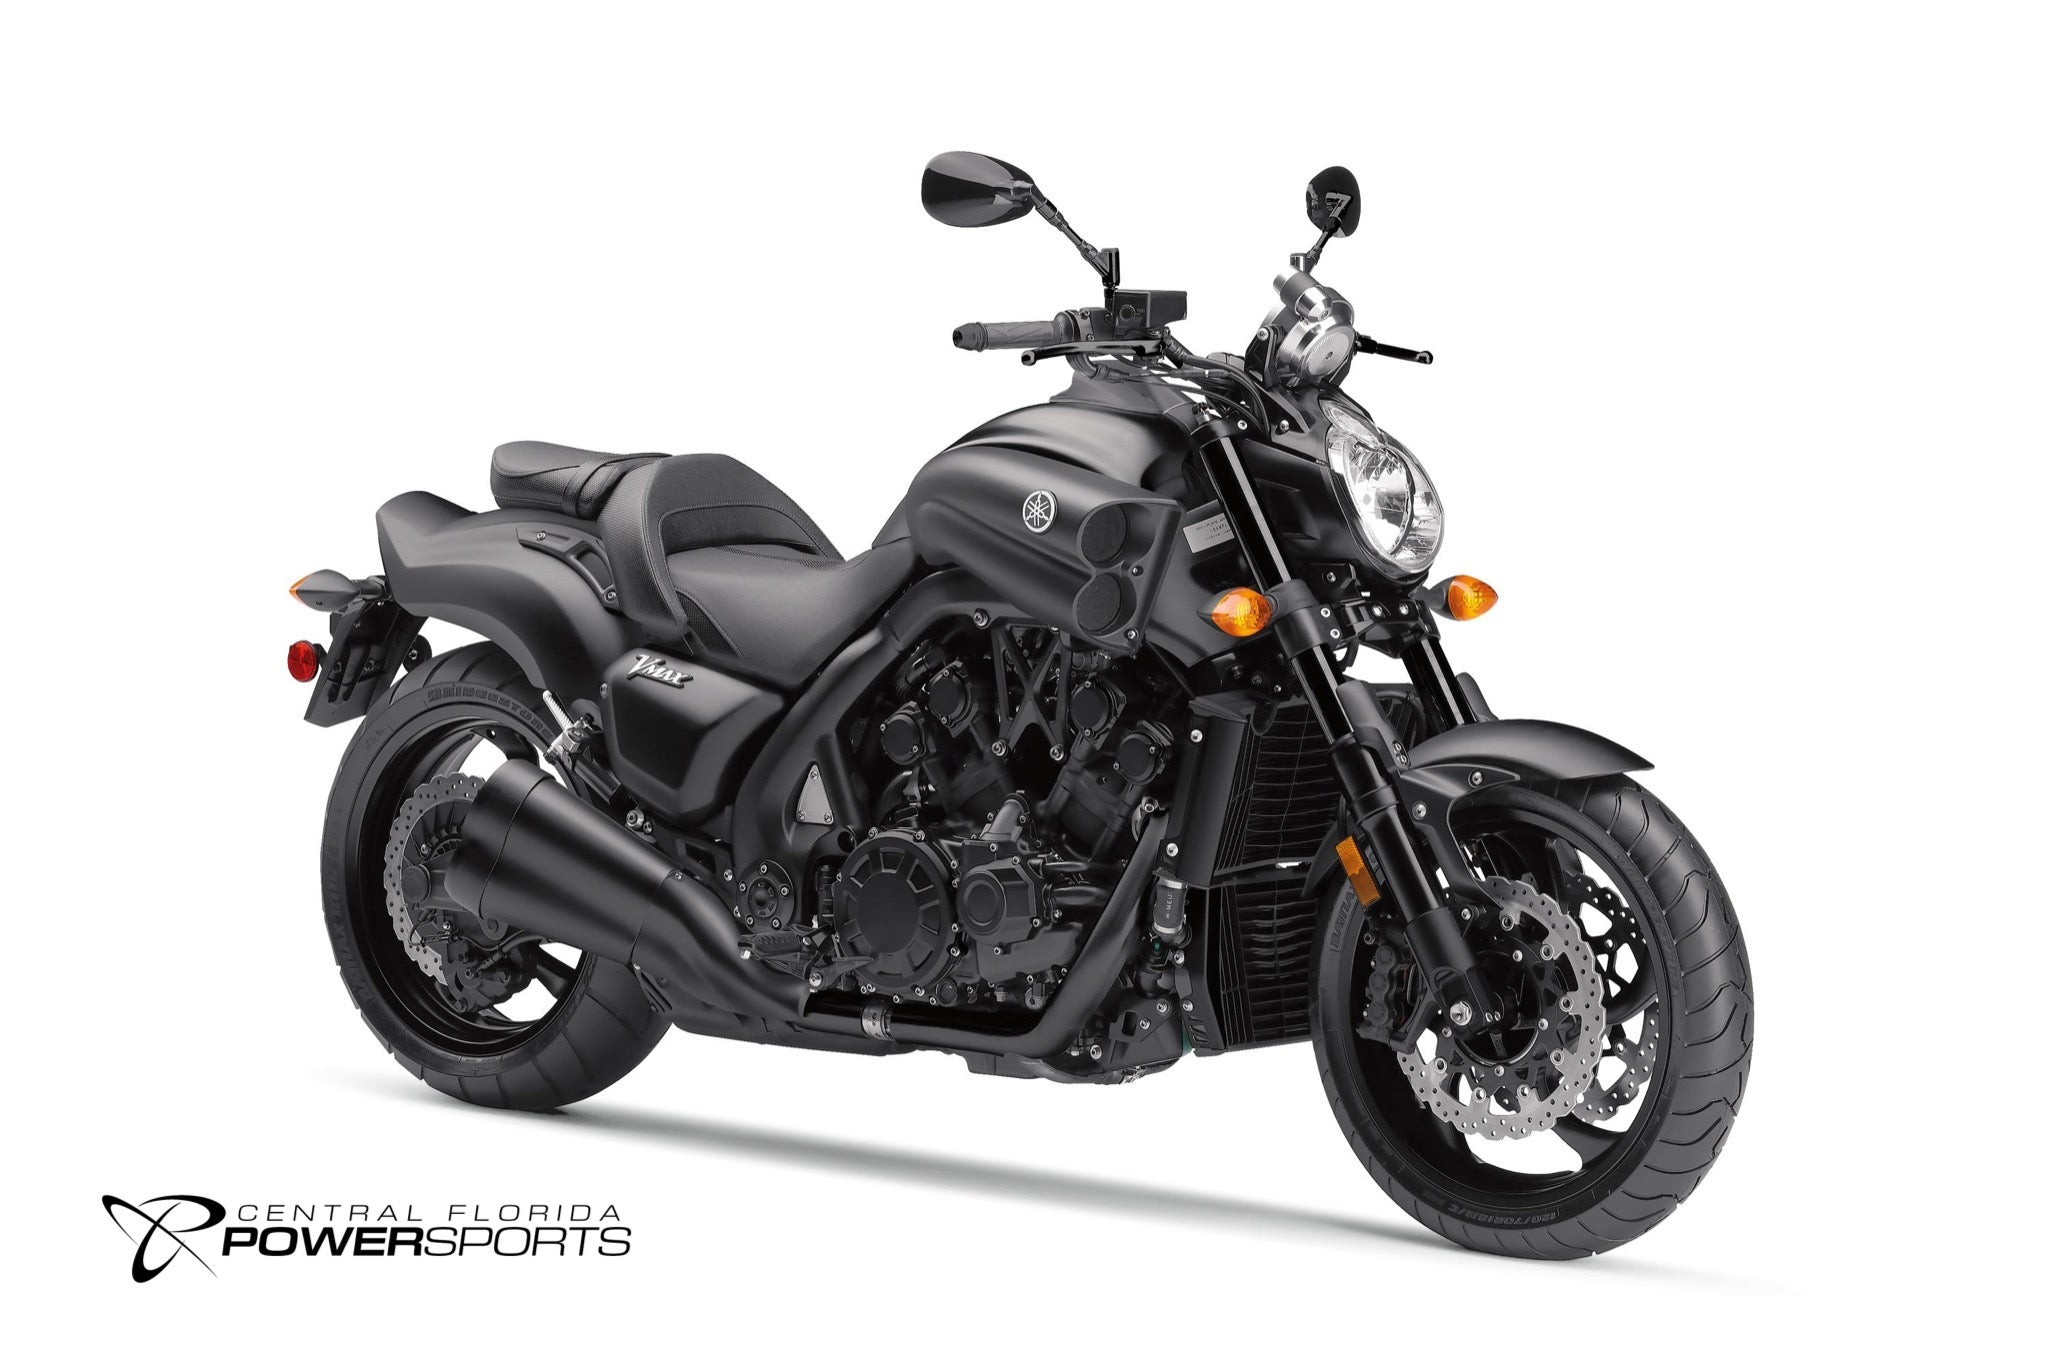 vmax motorcycle pictures  New 2018 Yamaha VMAX Cruiser Motorcycles For Sale - Central Florida ...